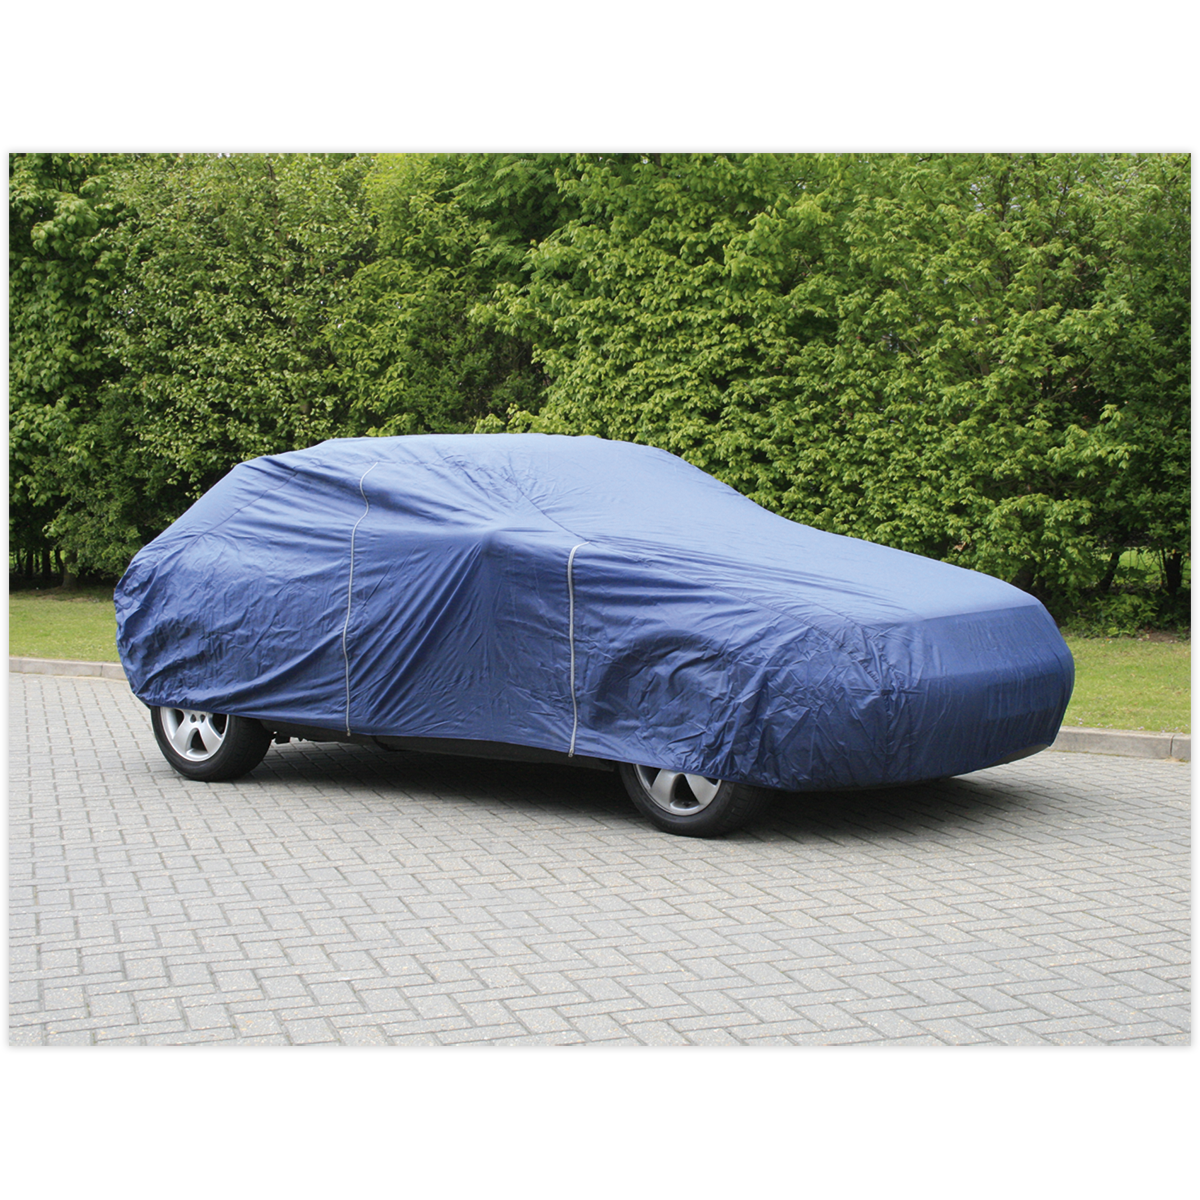 Car Cover Lightweight Large 4300 x 1690 x 1220mm